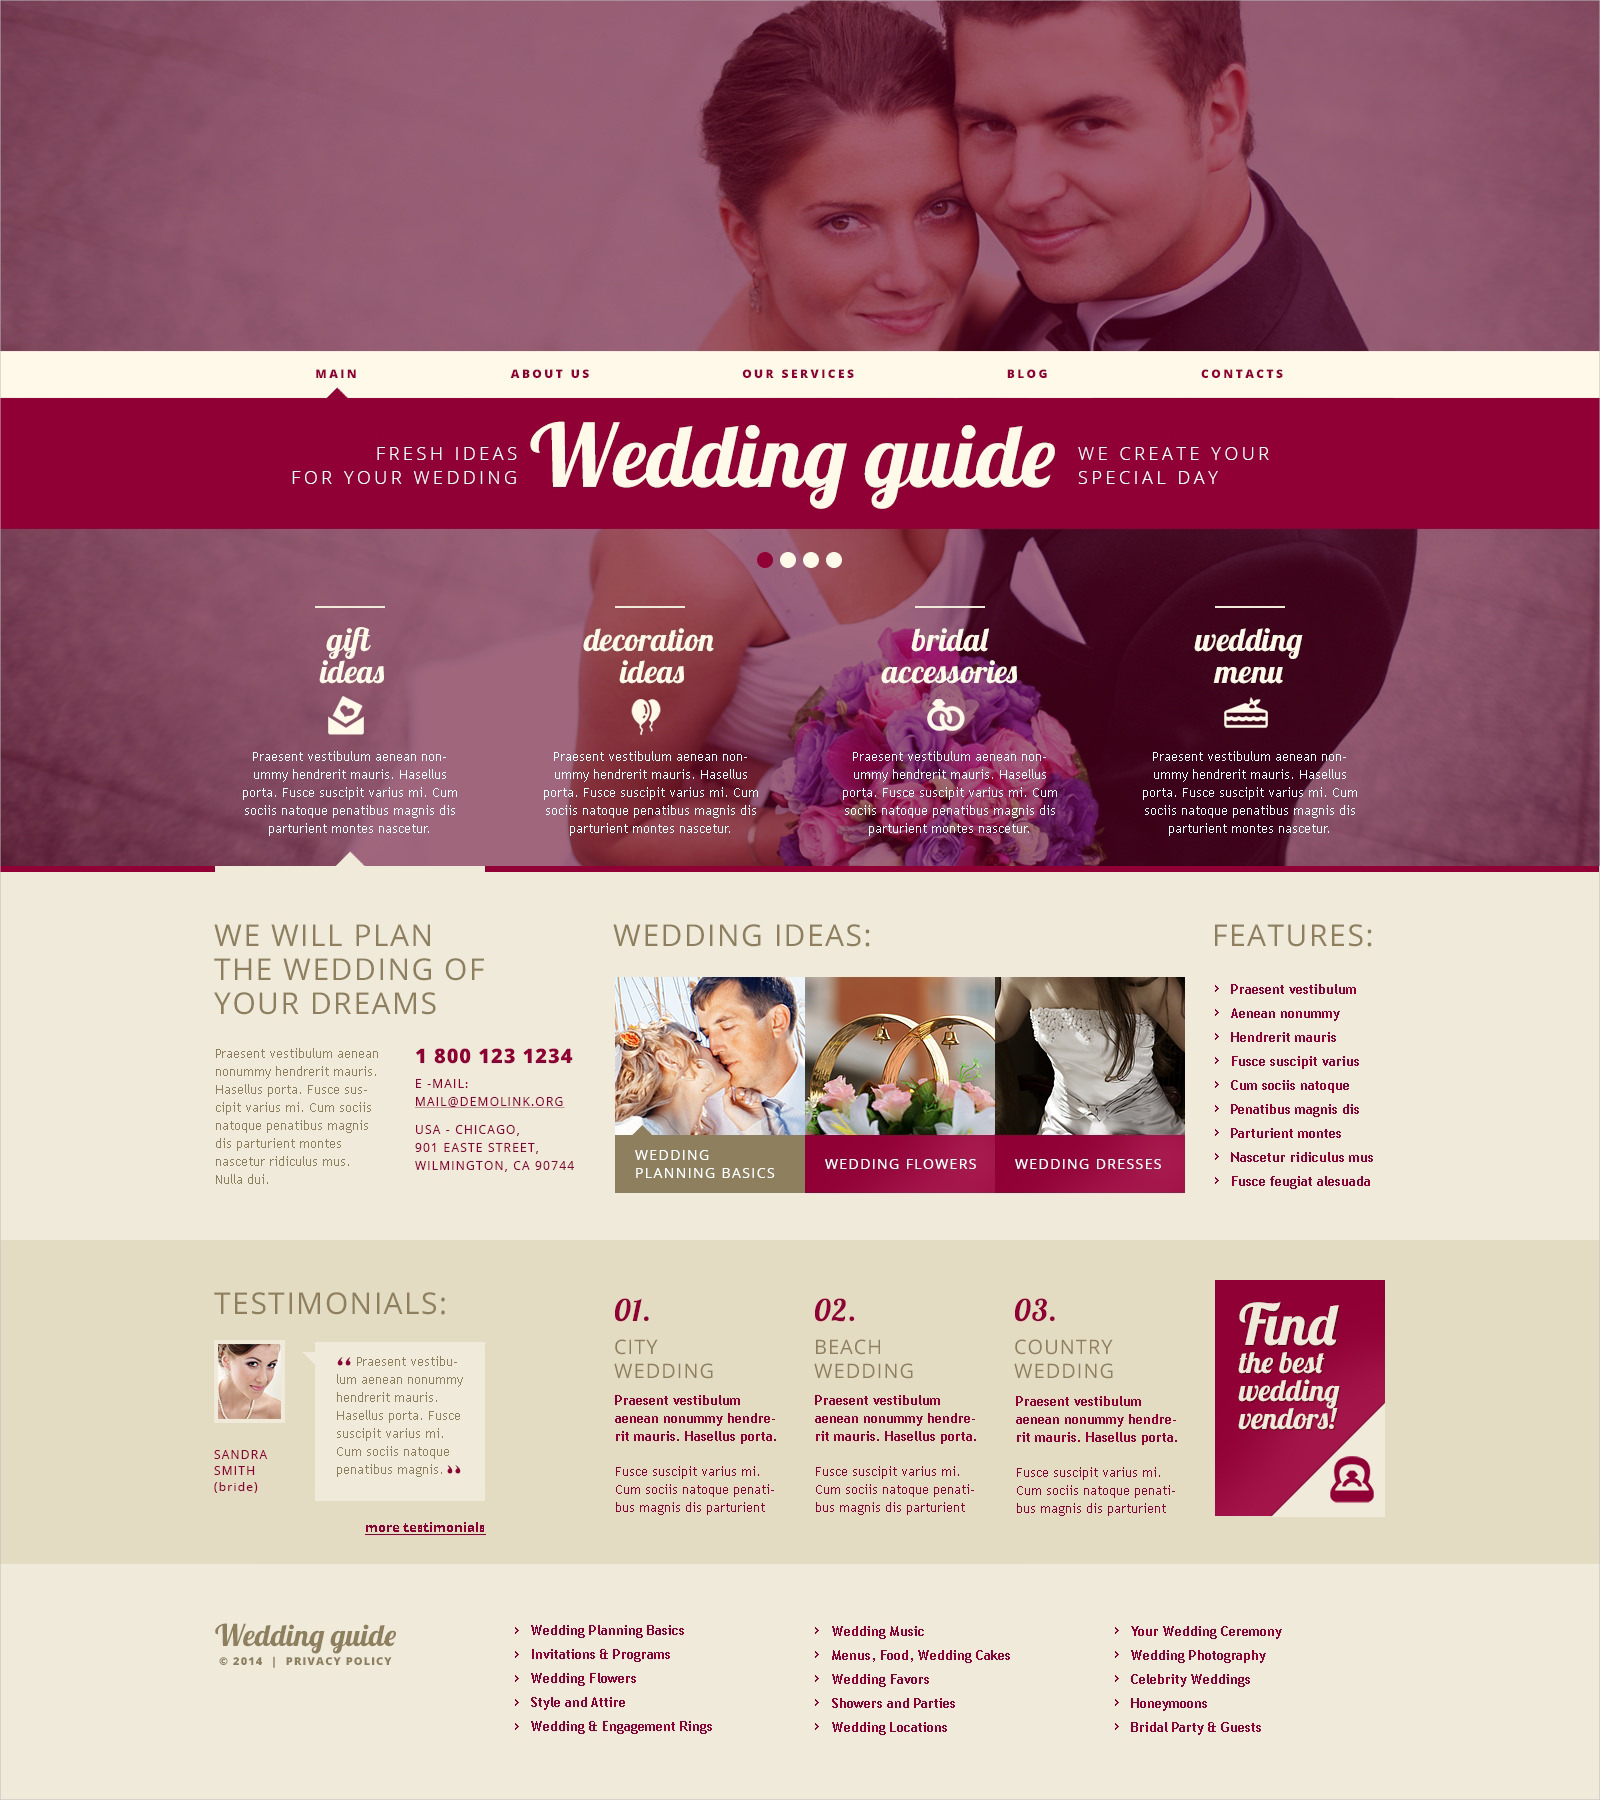 wedding guide wp theme